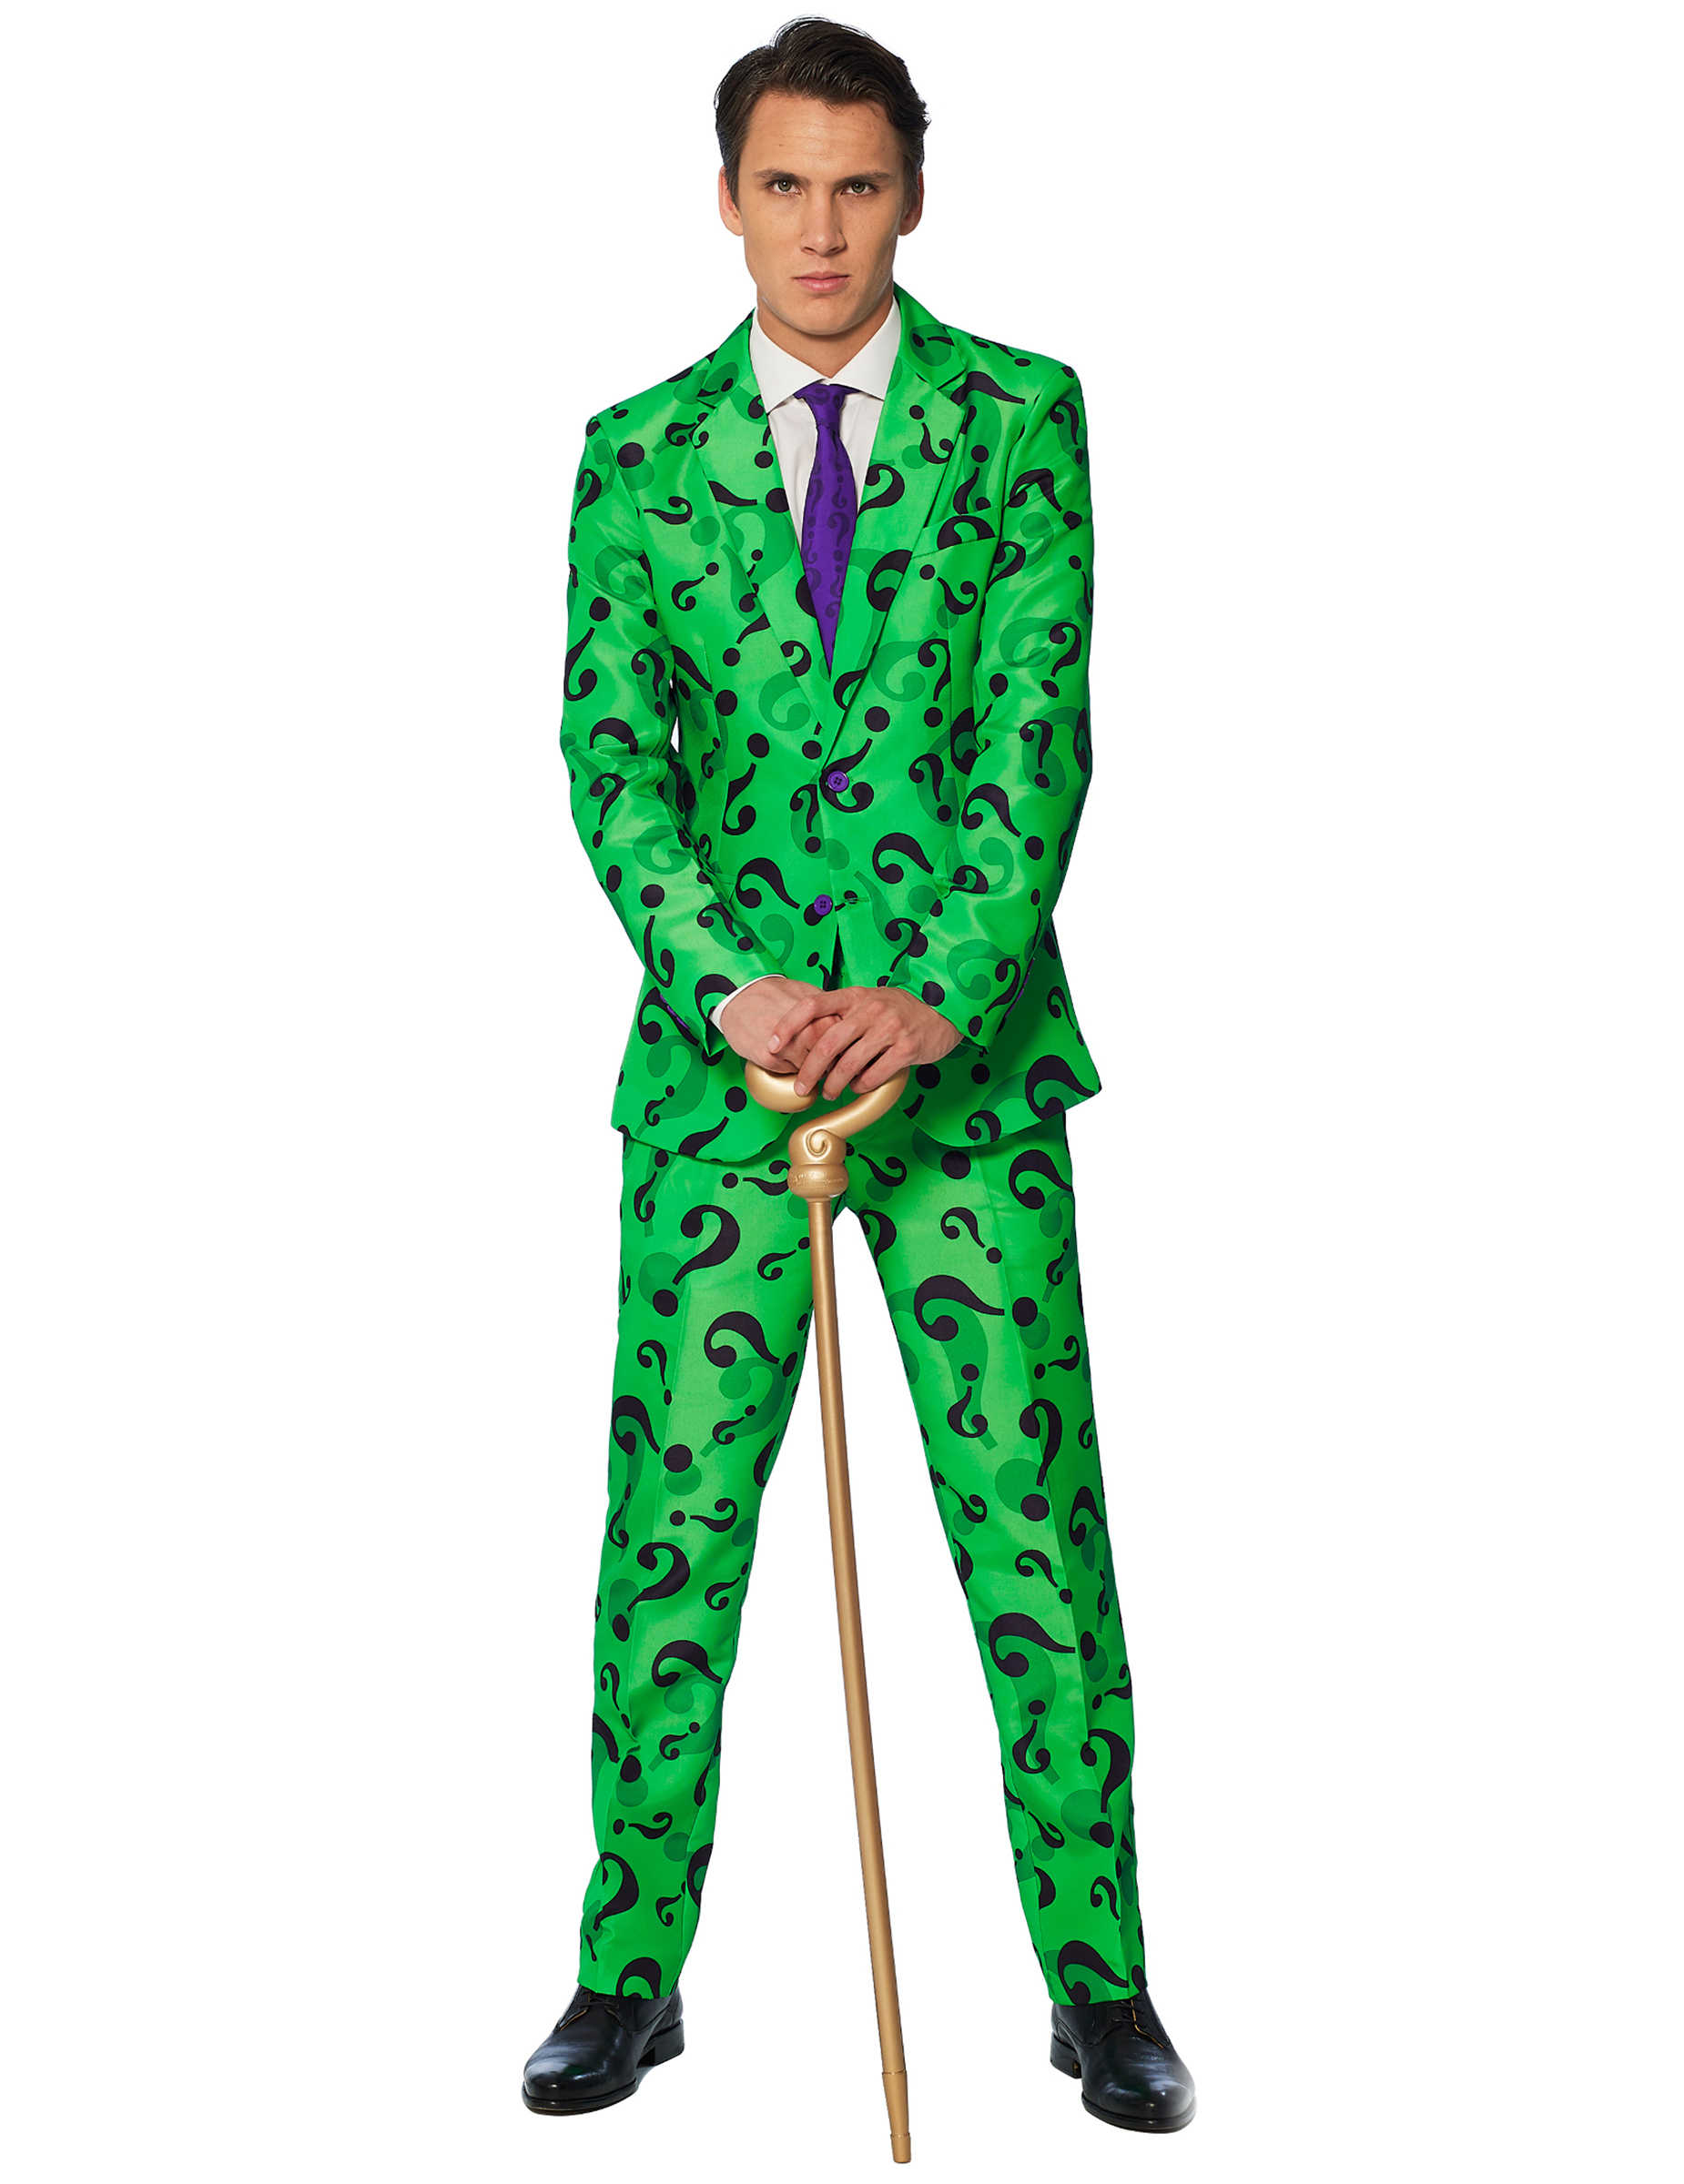 9b0bb75b8eb5c Disfraz Mr. Riddler™ adulto Suitmeister™  Disfraces adultos